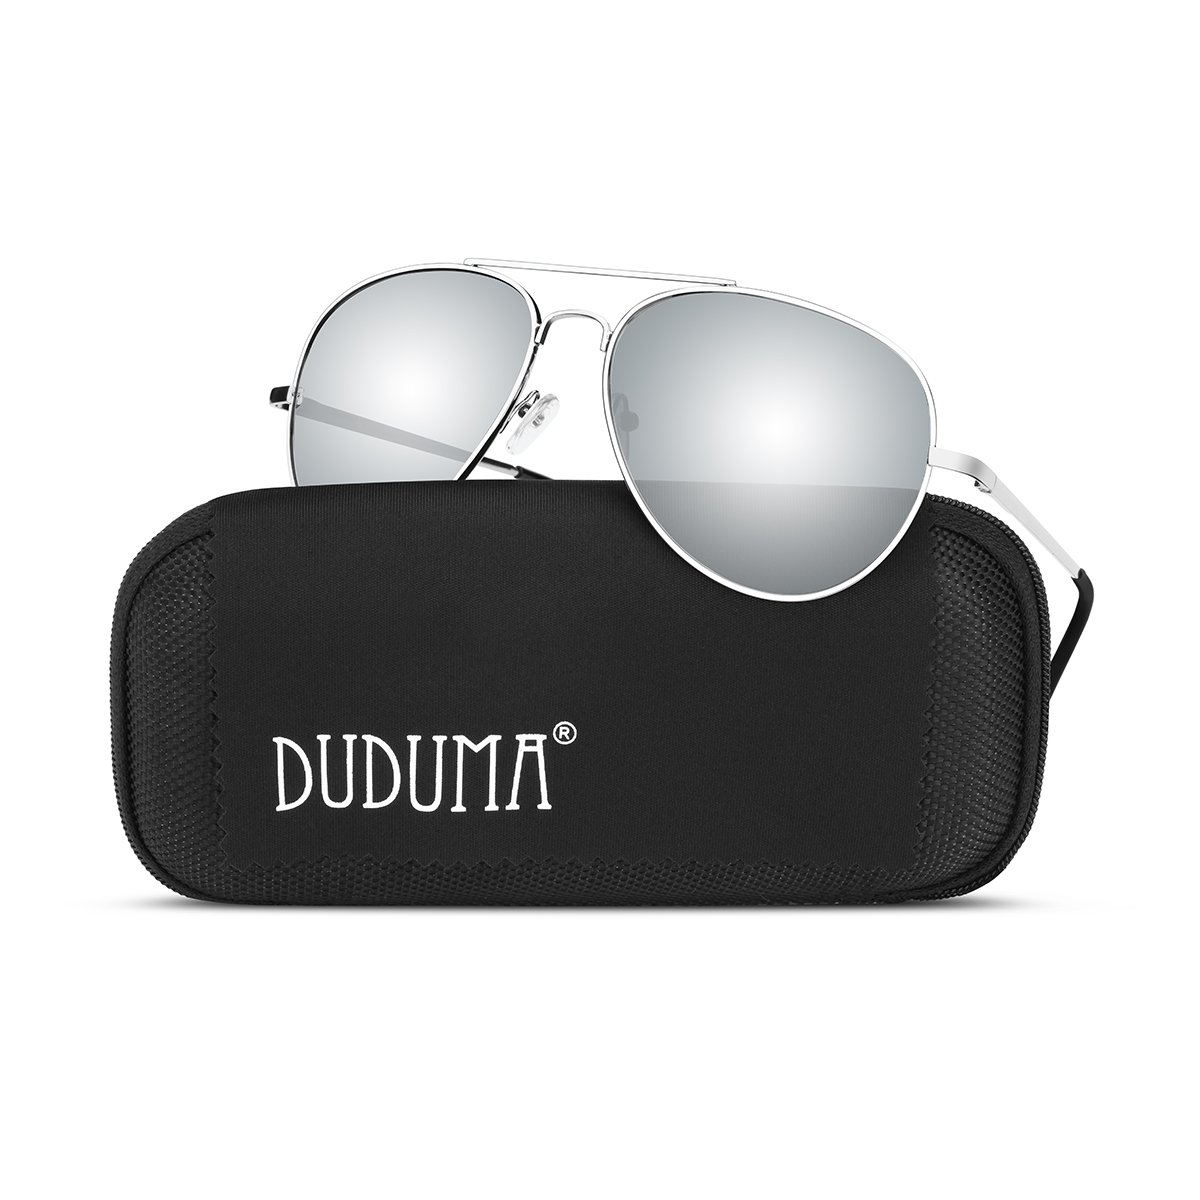 Duduma Premium Full Mirrored Aviator Sunglasses w/Flash Mirror Lens Uv400(Silver frame/Silver mirror lens)